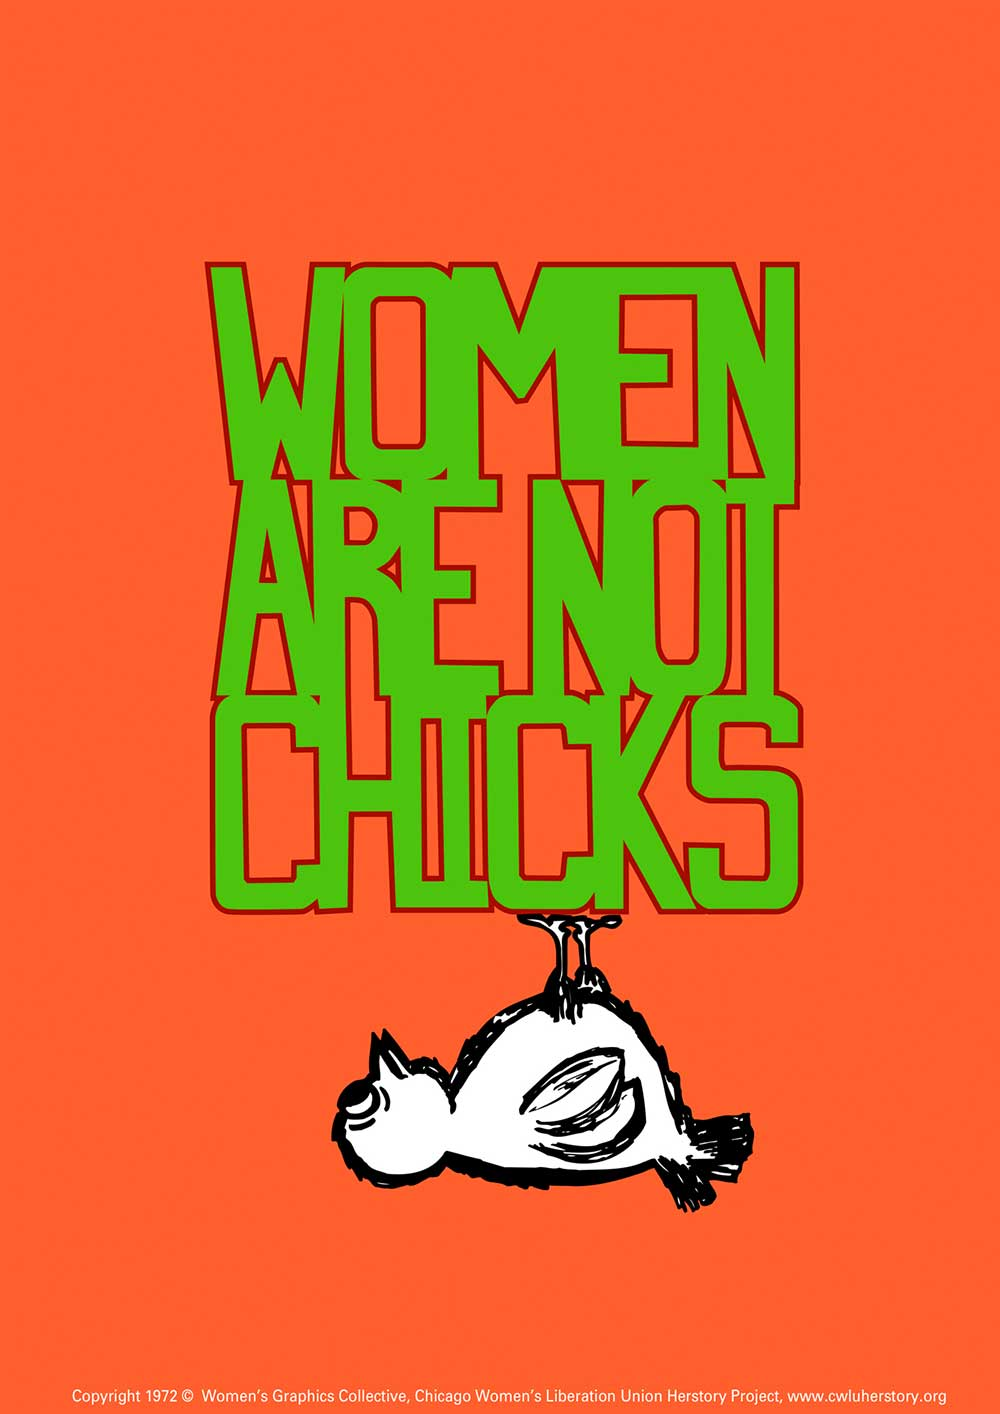 Women Are Not Chicks